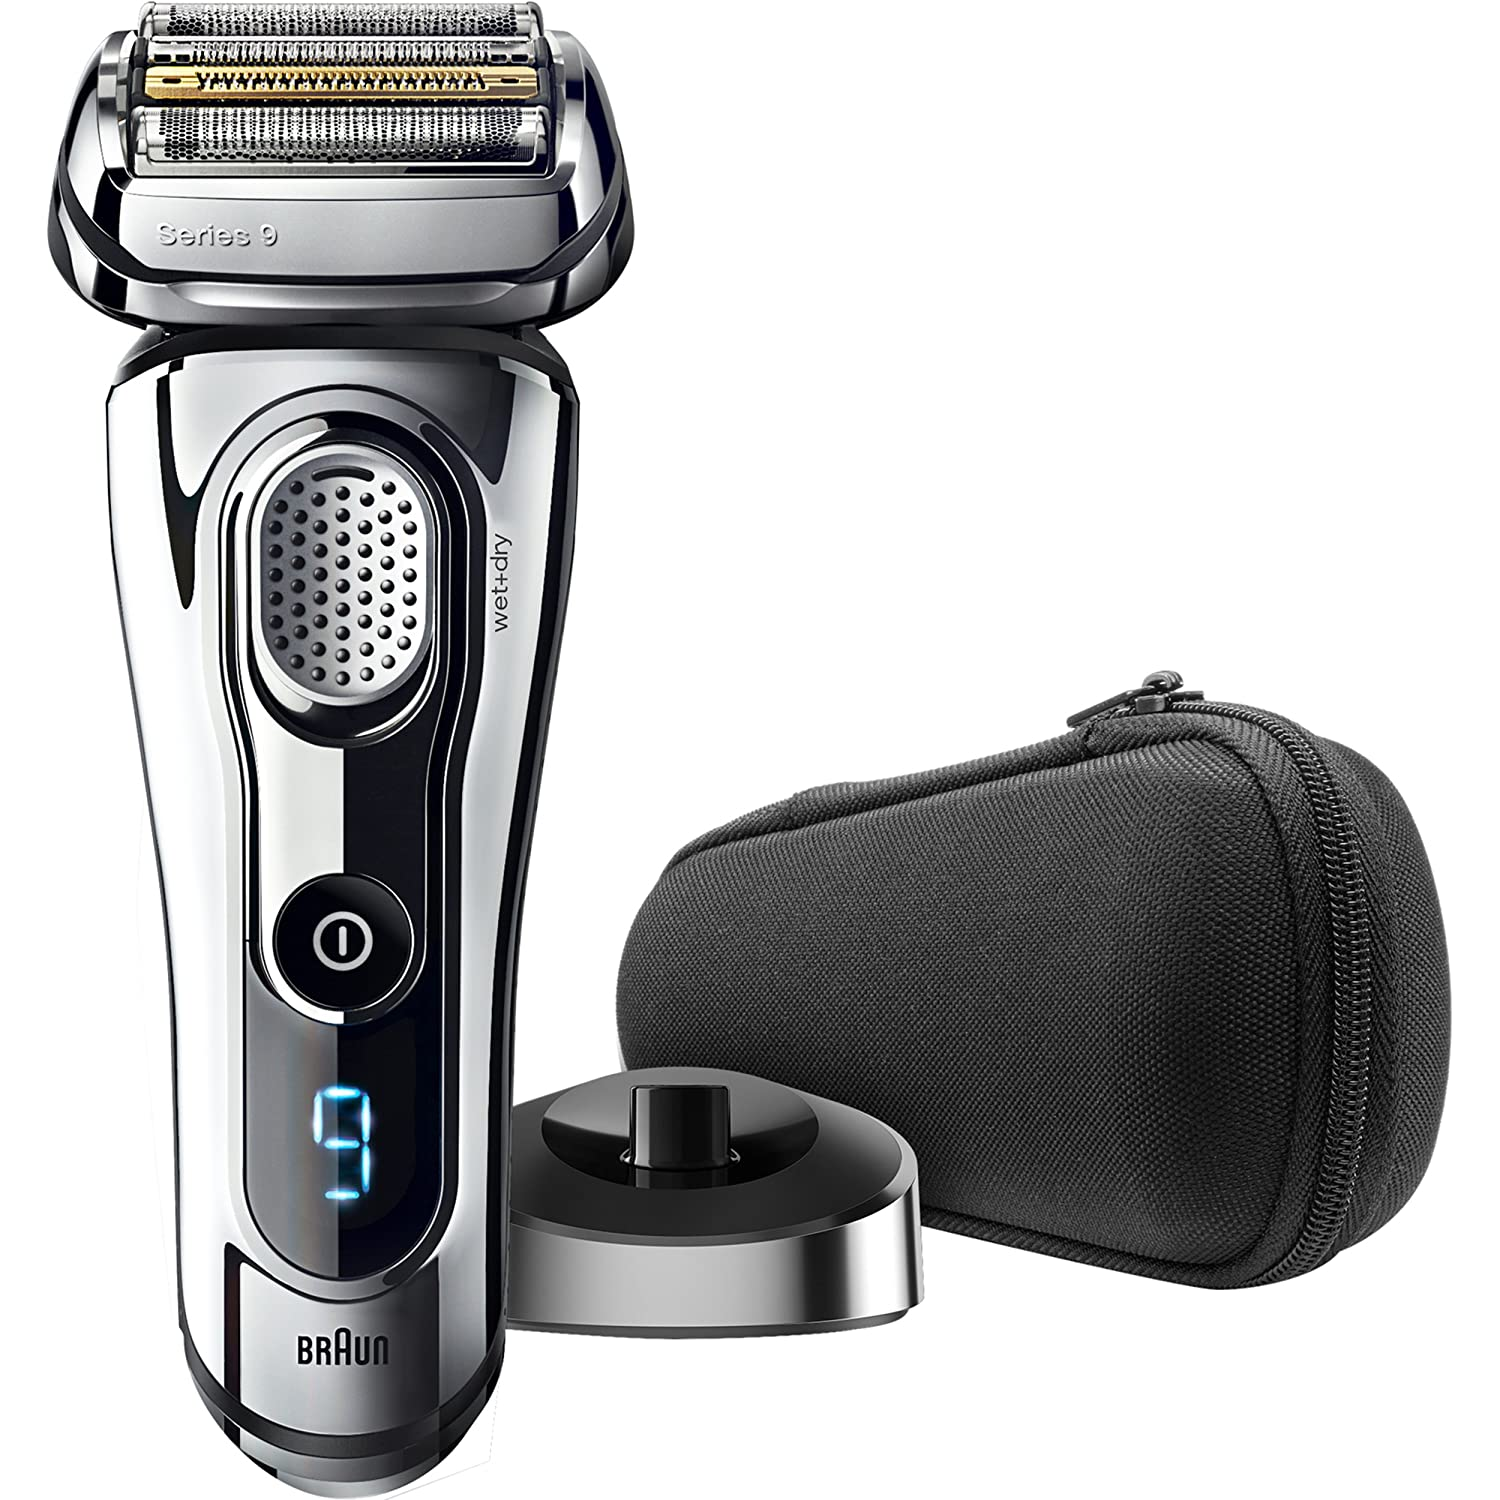 Braun Electric Razor for Men/Electric Shaver, Series 9 9293s Electric Razor for Men, Travel Case with Charging Stand, Rechargeable & Cordless, Wet & Dry, Pop Up Trimmer, Premium Chrome Cordless Razor